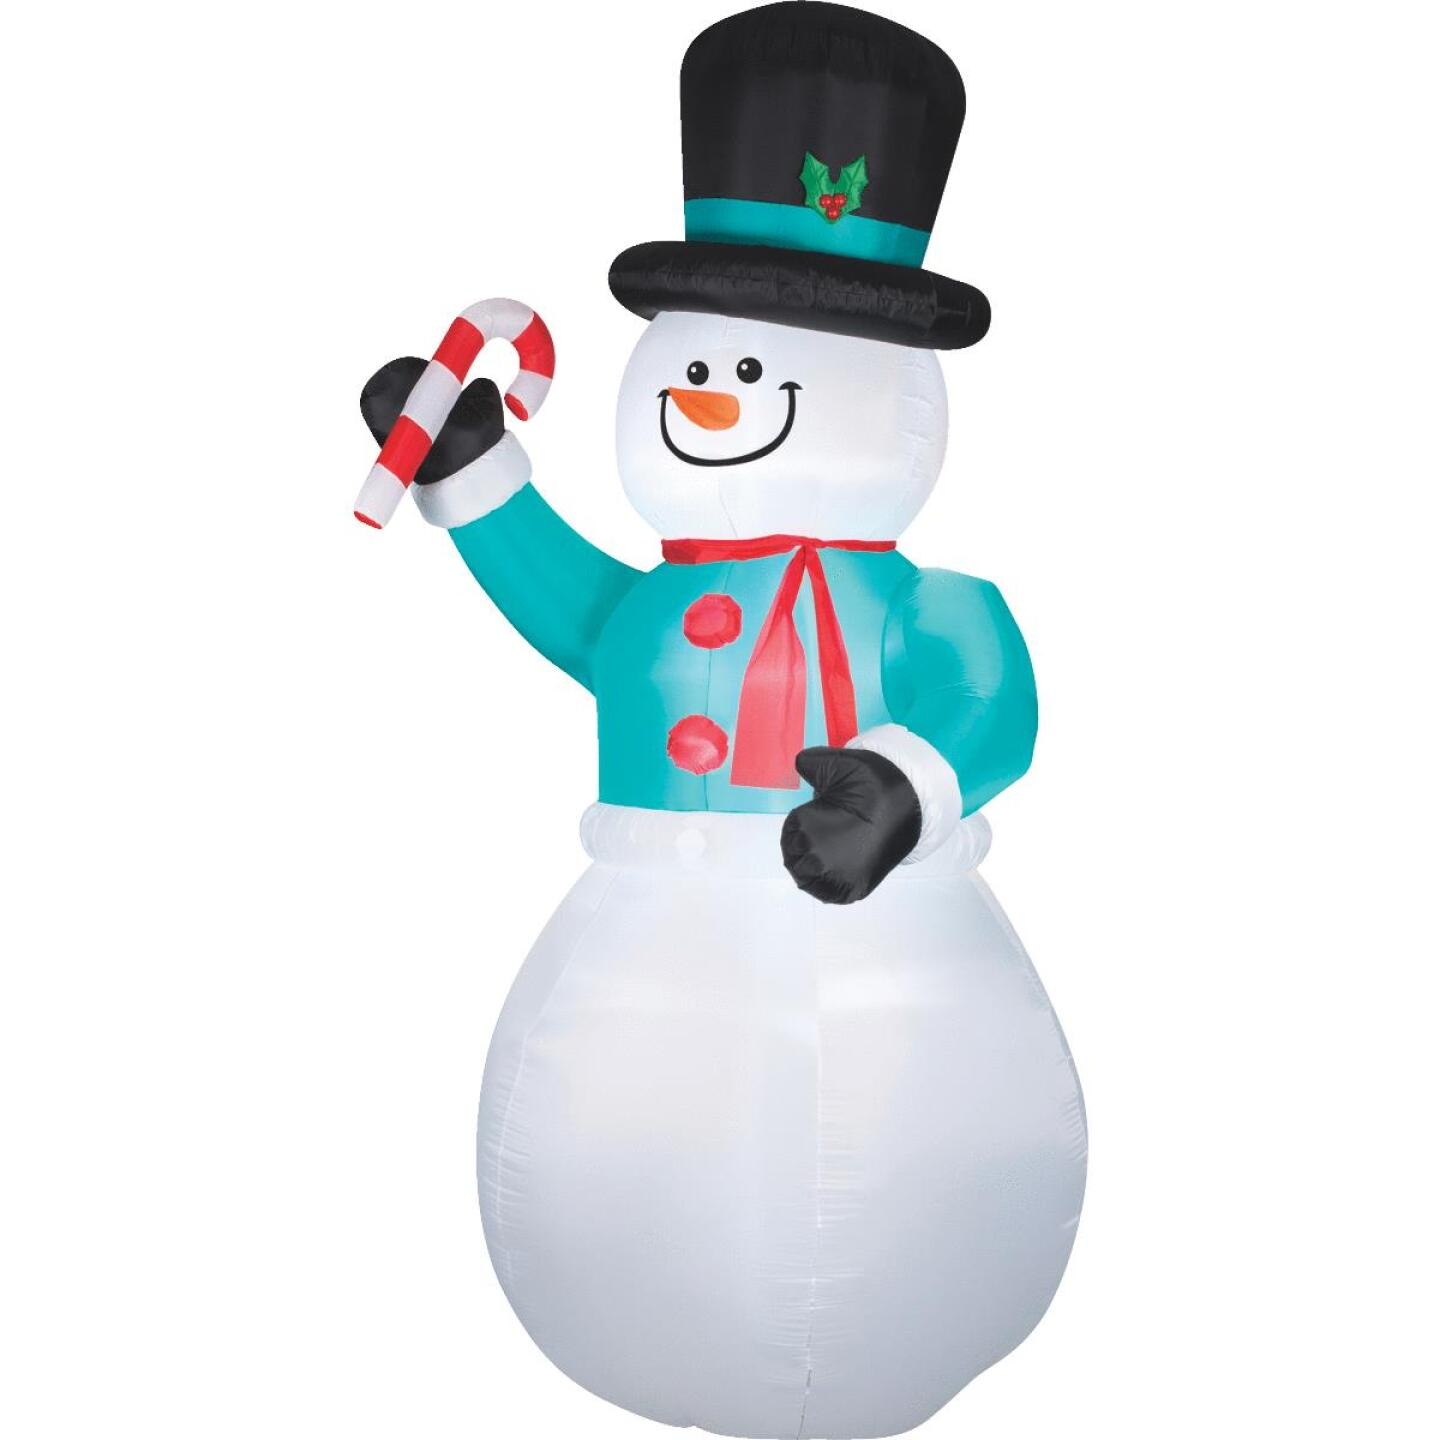 Gemmy 6 Ft. W. x 12 Ft. H. Airblown Inflatable Snowman Image 1